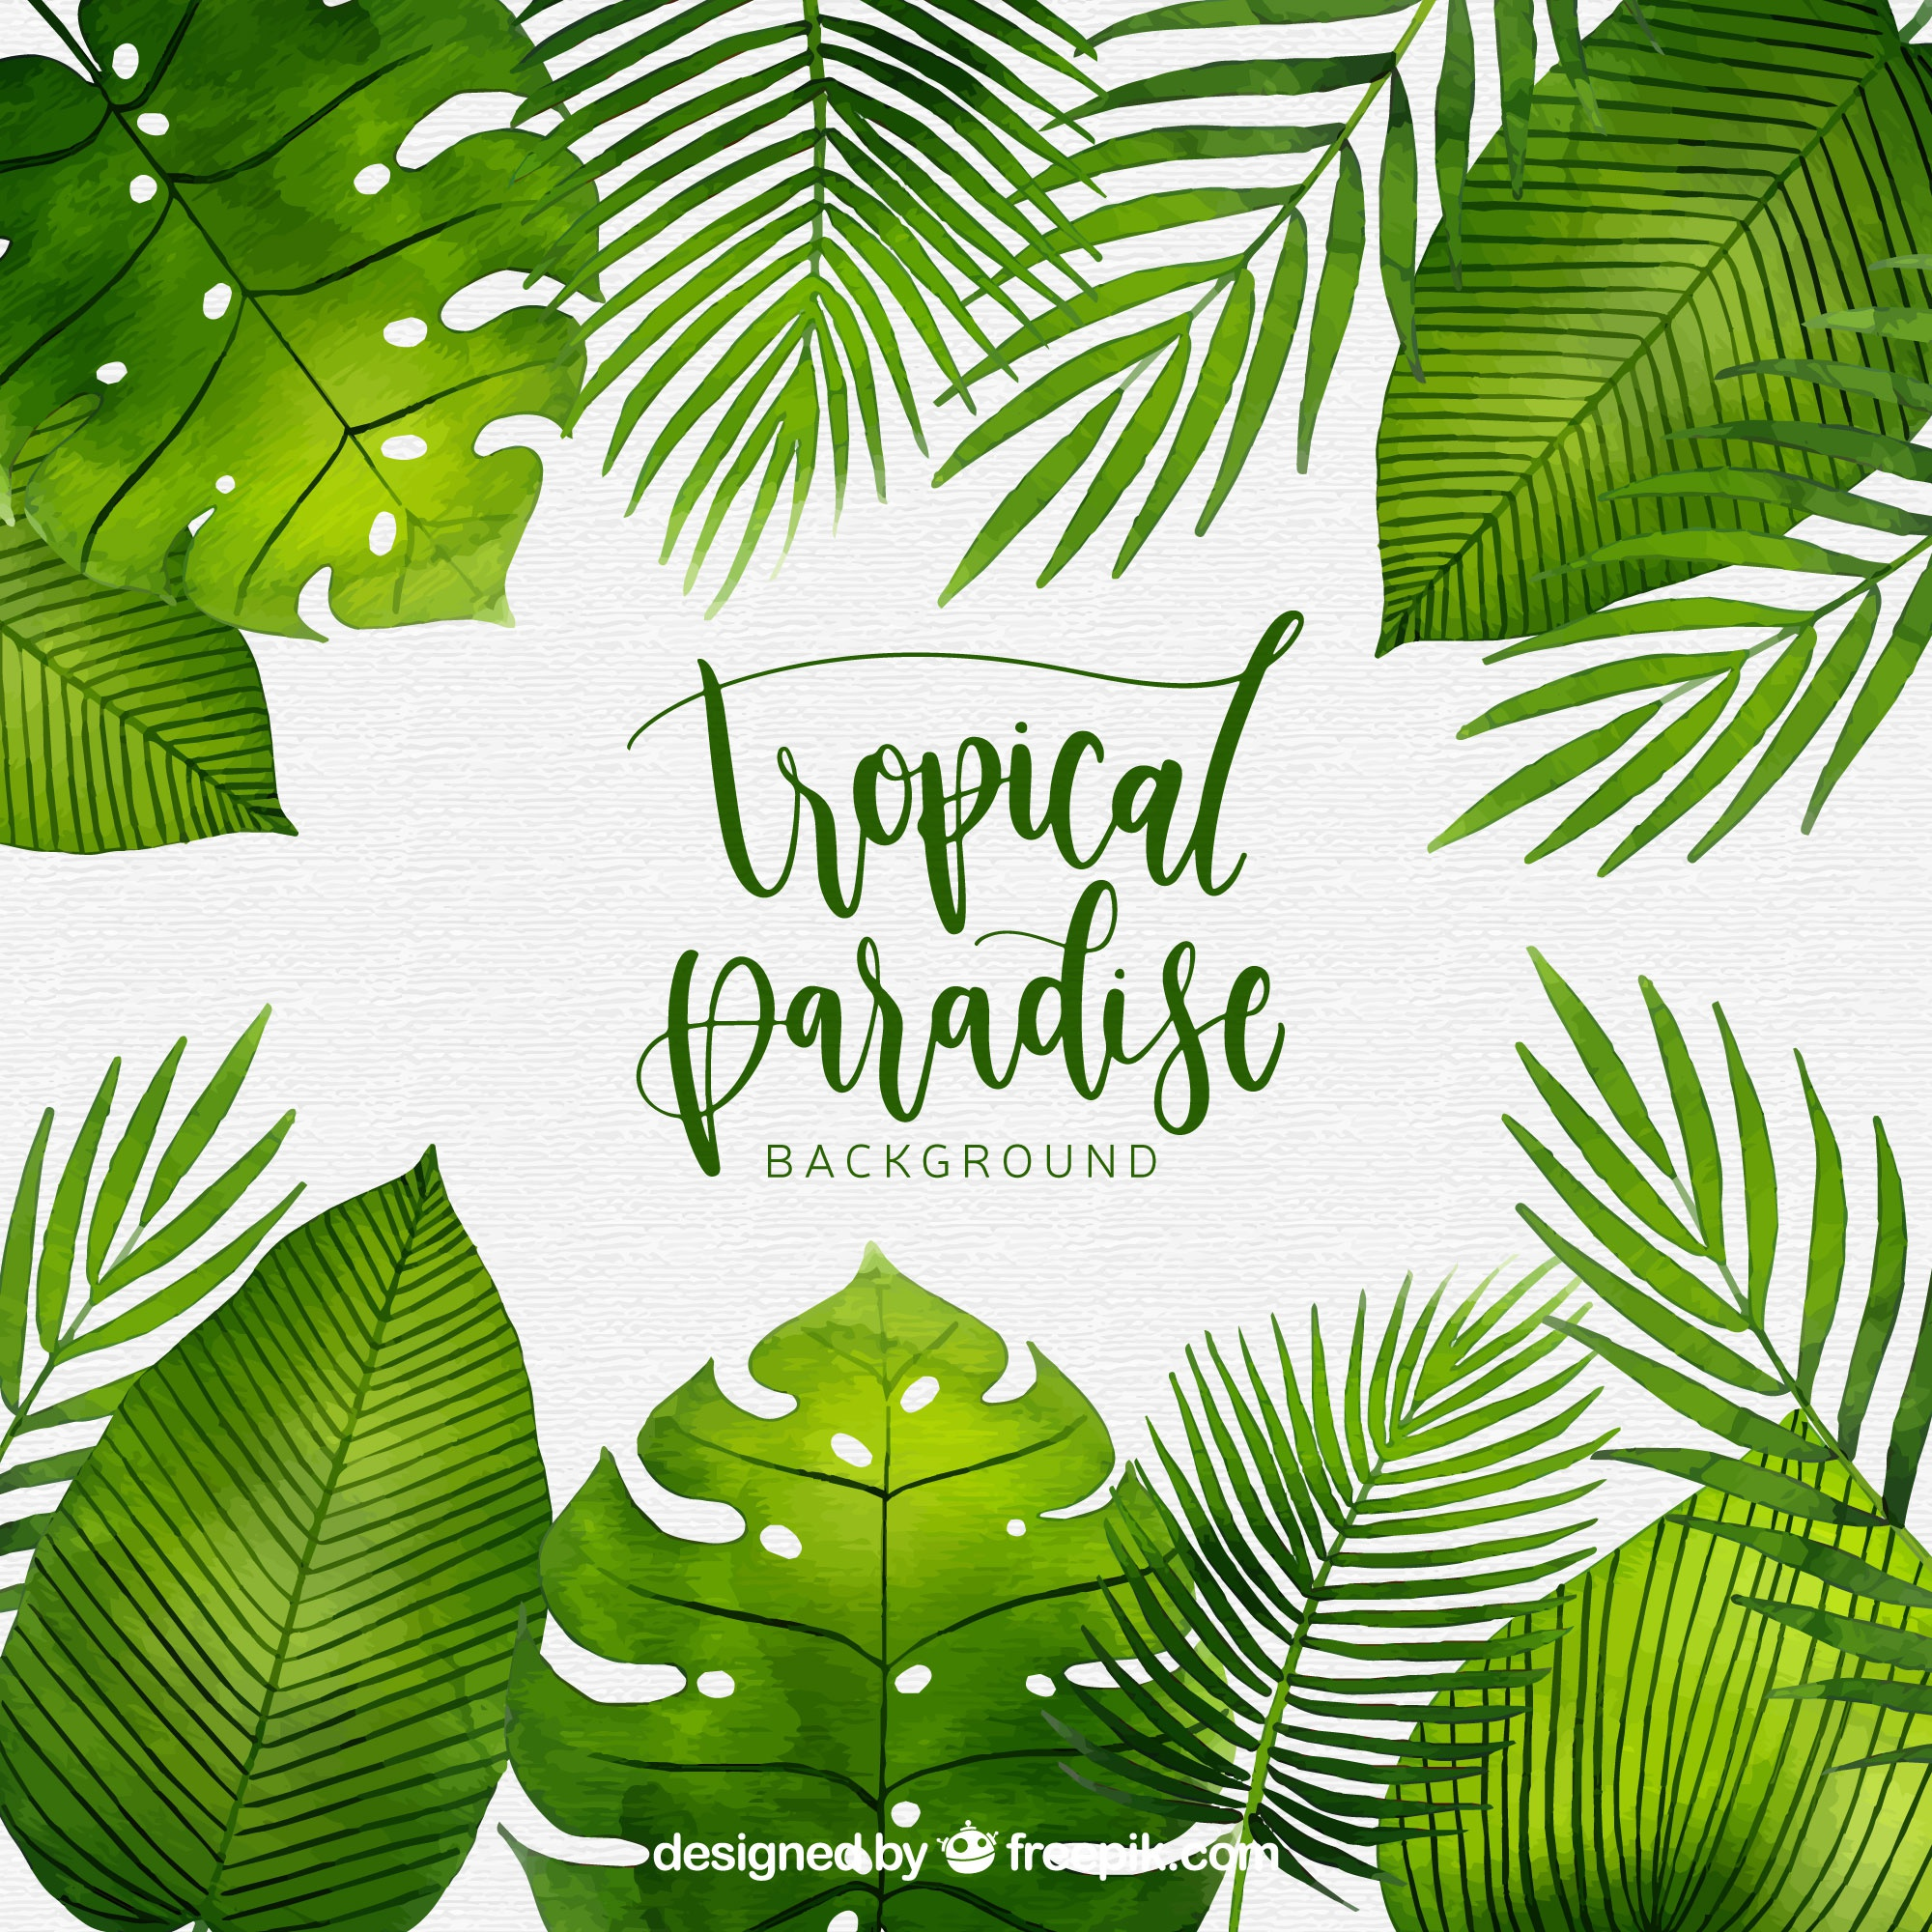 Tropical background with watercolor plants